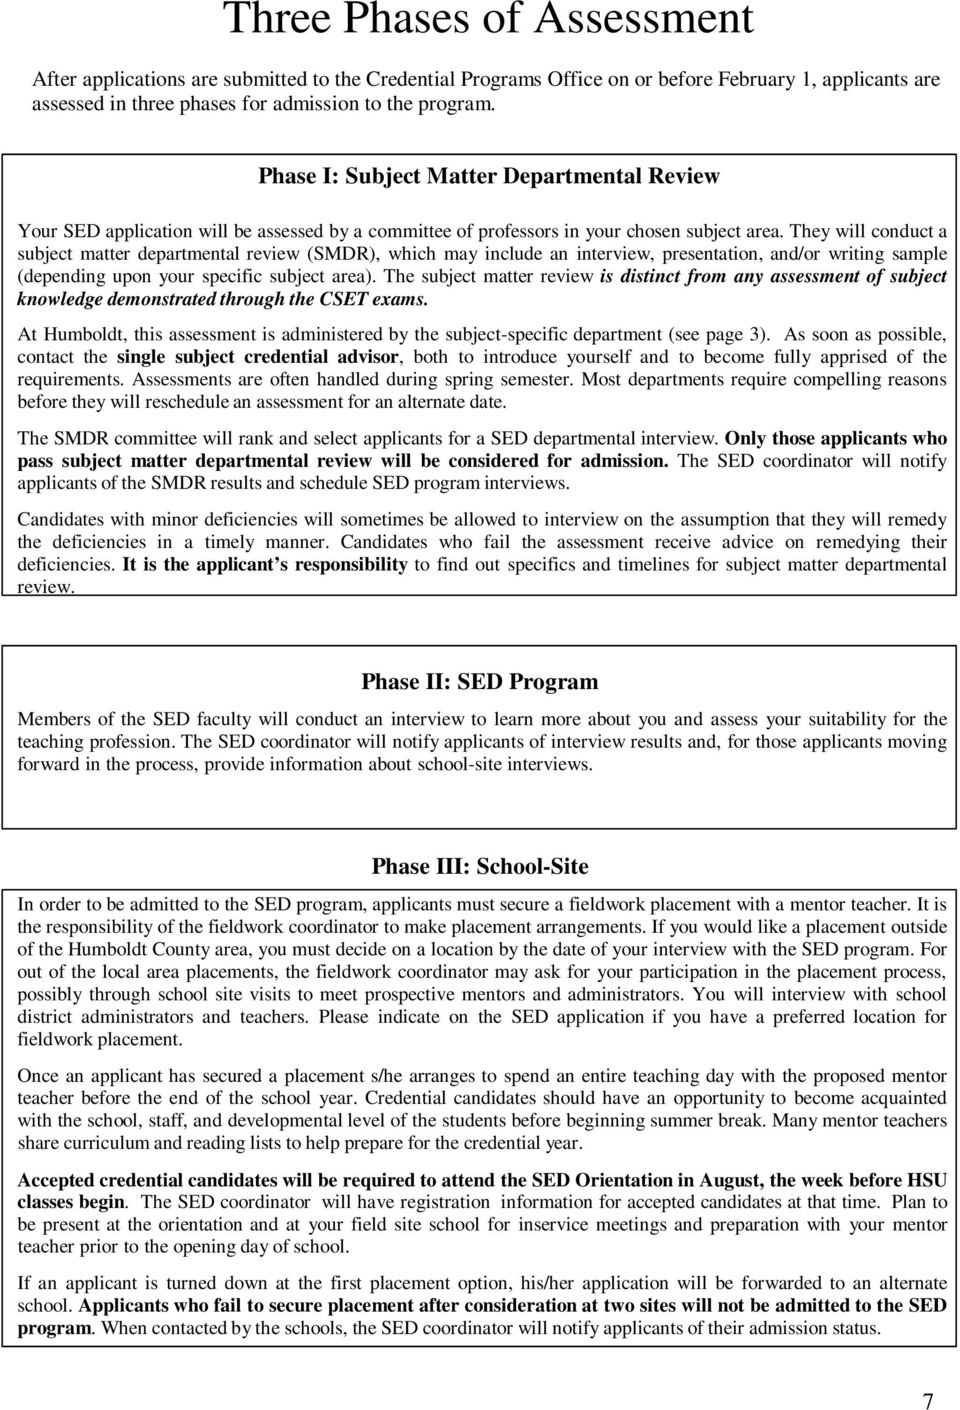 Secondary Education Credential Program Admission Guide Pdf